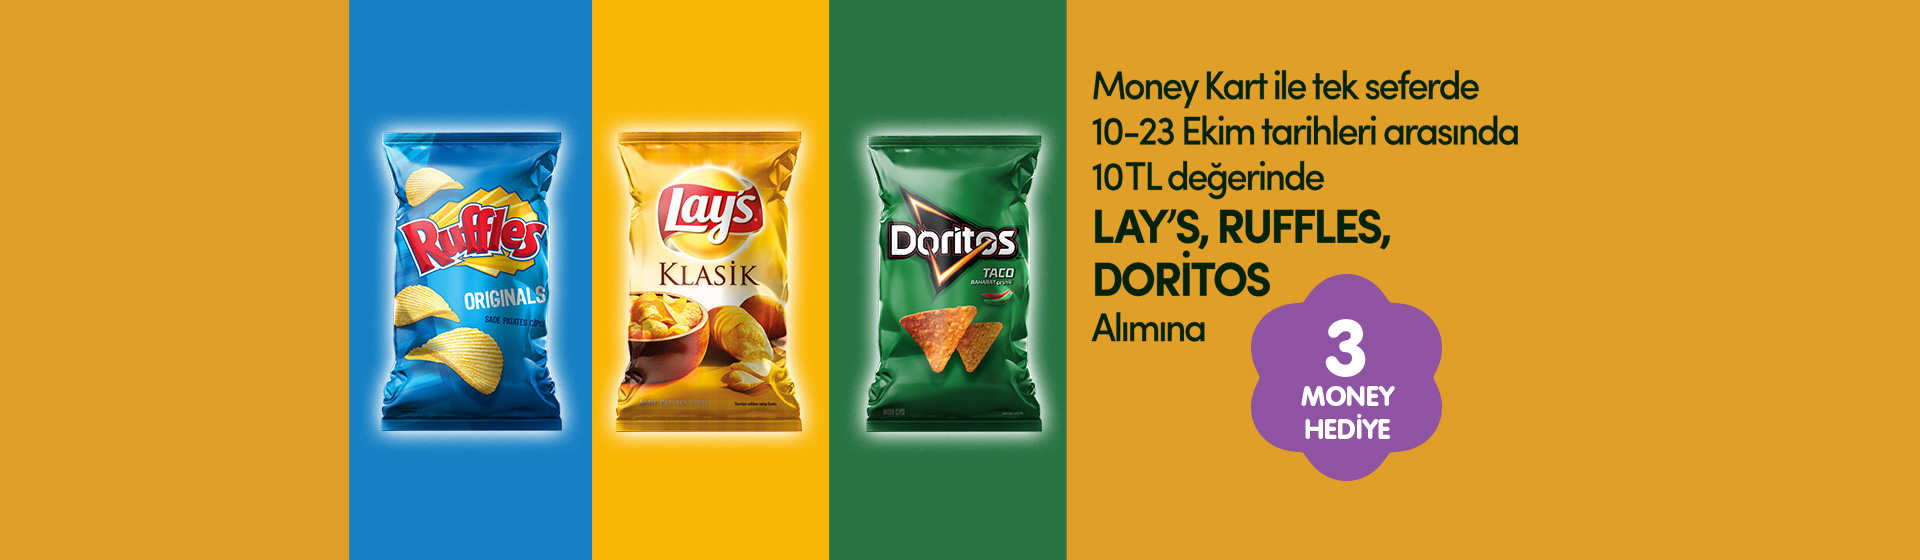 Lay's Ruffles Doritos Money Kampanyası